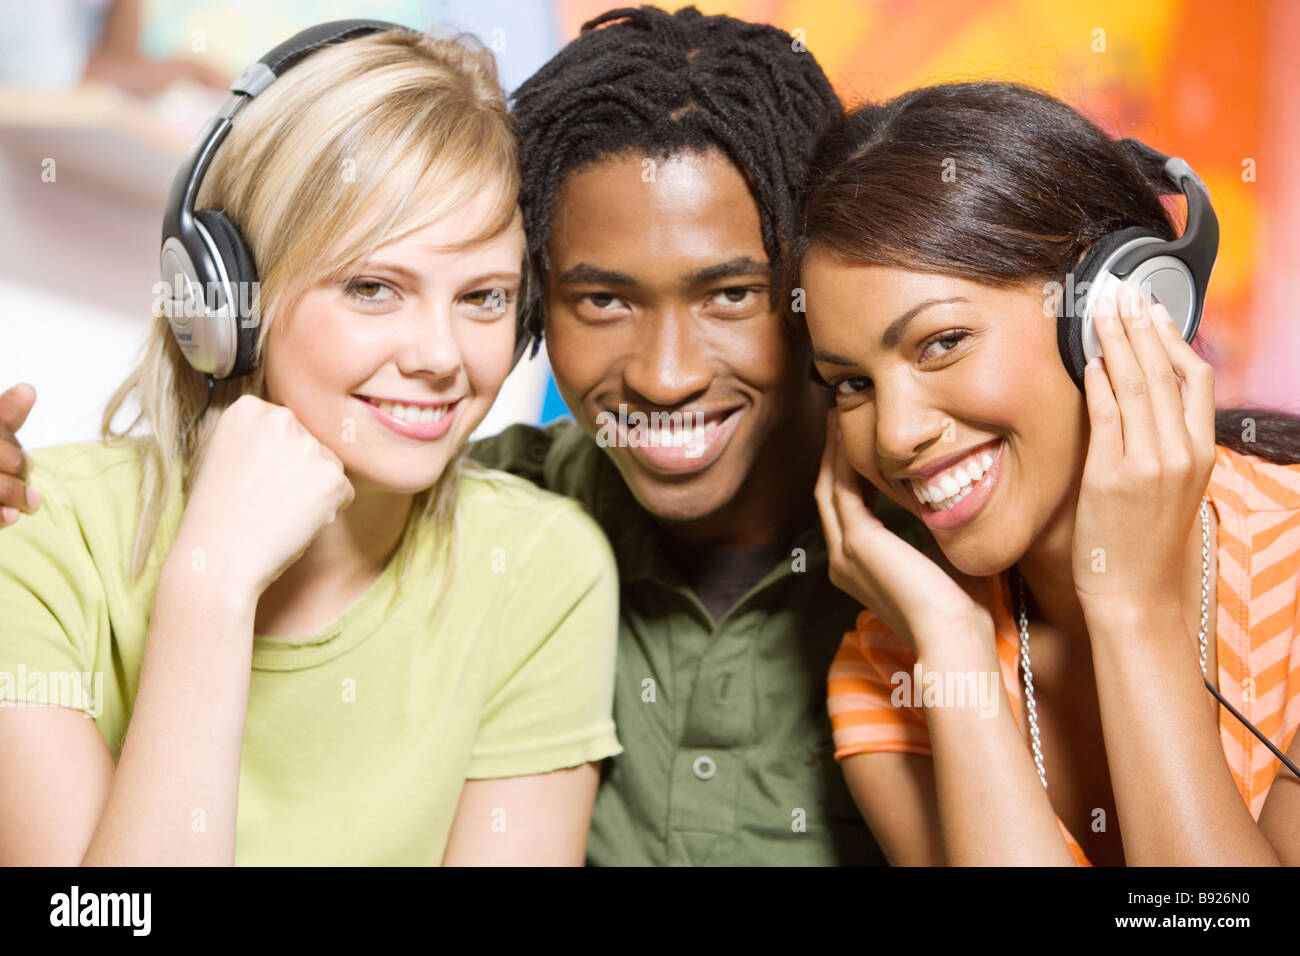 youth culture in a young adults life In urban centres, media culture and its predominant messages permeate almost all aspects of young people's lives increasingly, access to icts influences youth's education, personal relationships, employment opportunities, and more.